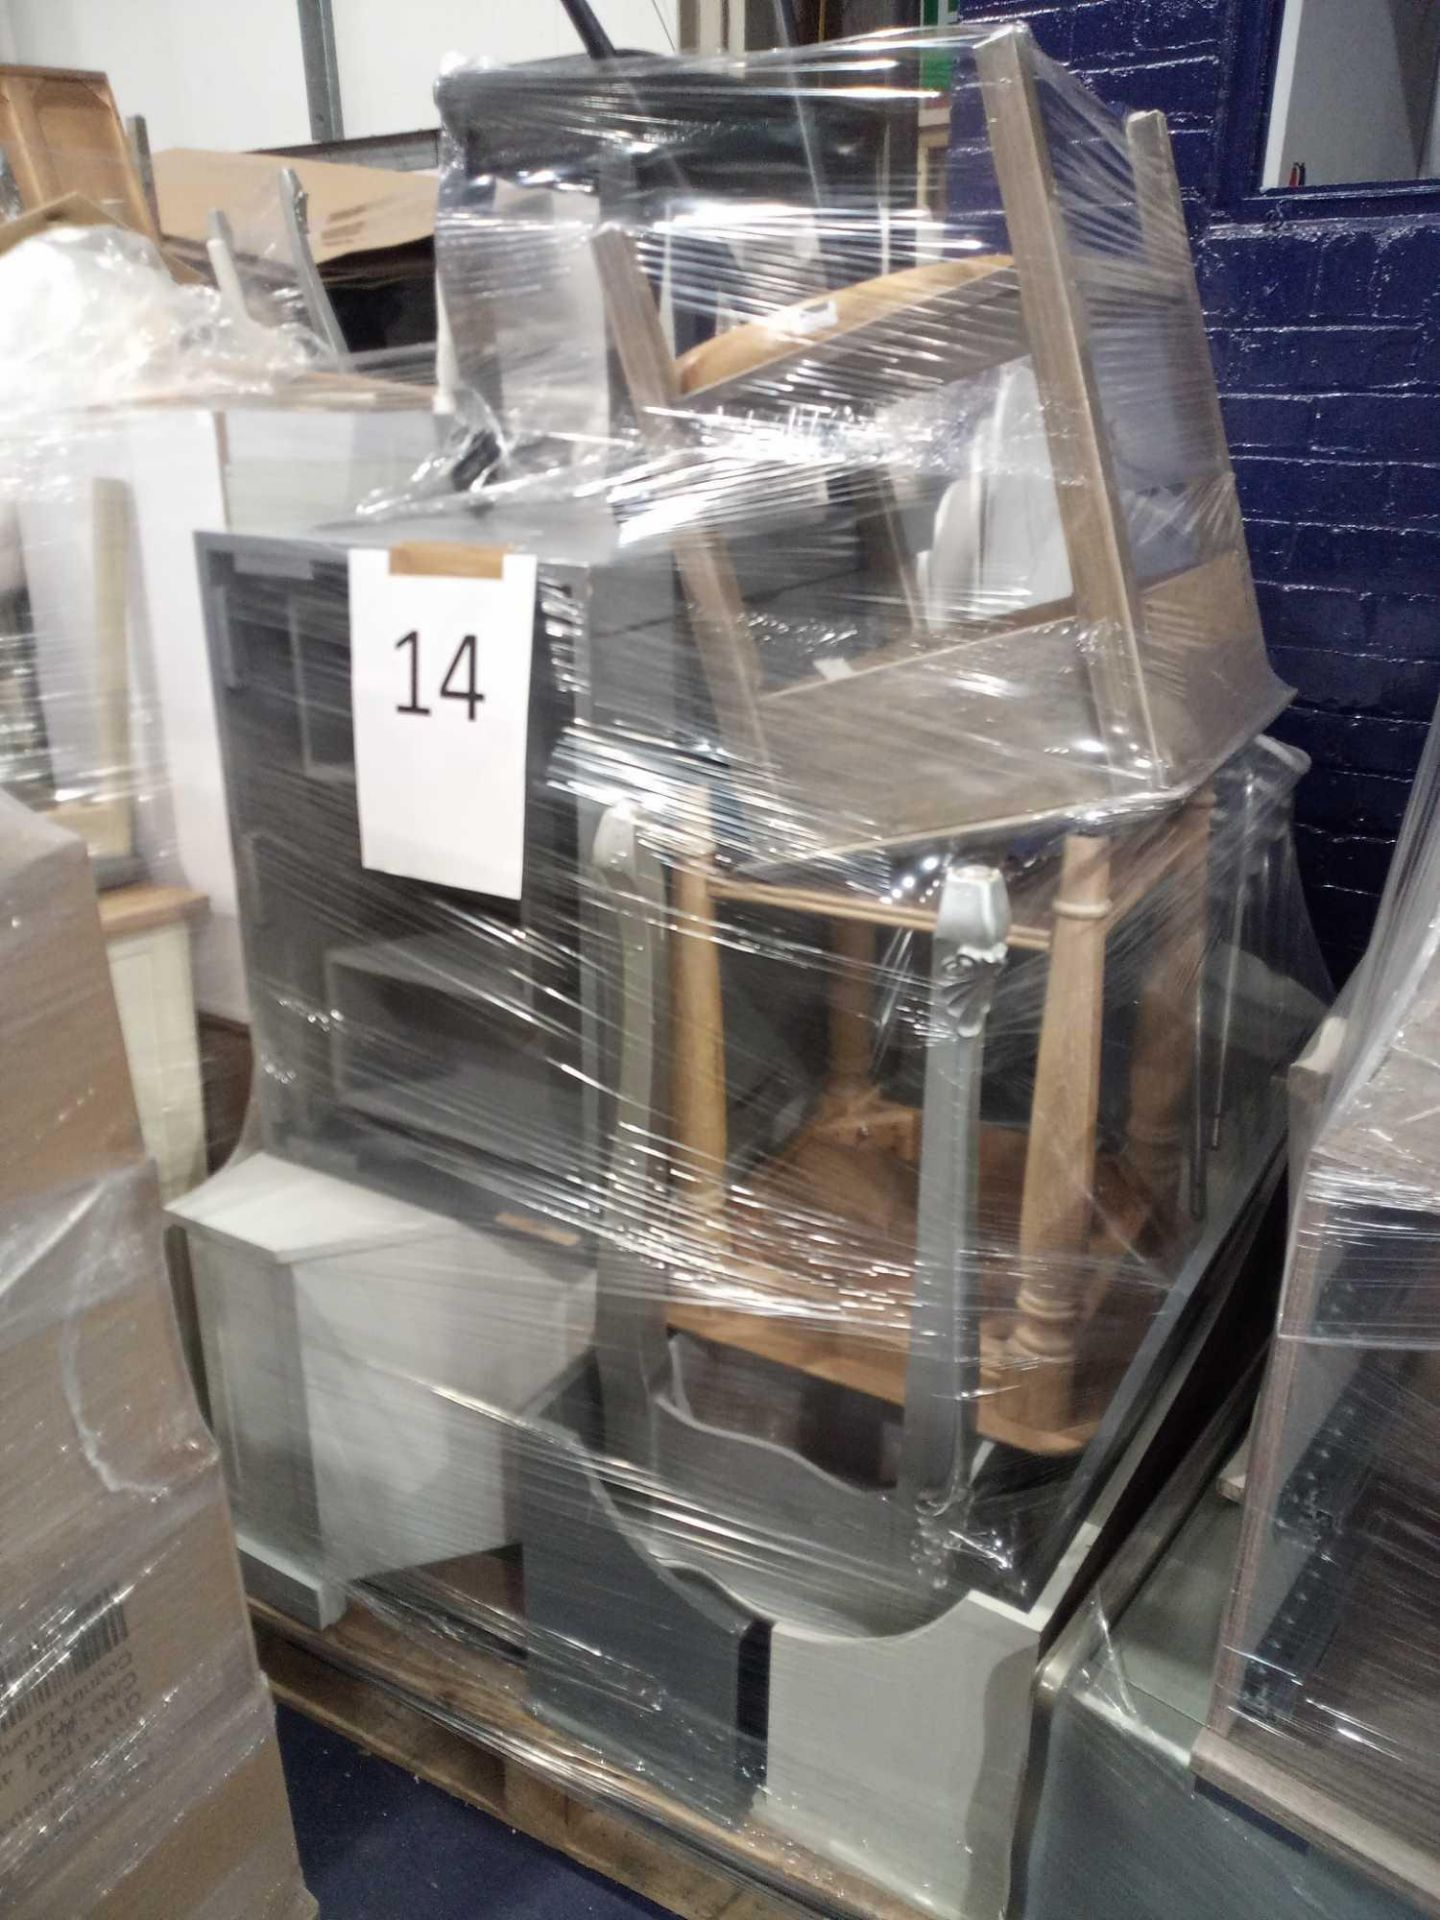 Pallet To Contain 13 Furnishing Items To Include Coffee Tables, Stools, Tv Stand And White Chairs.